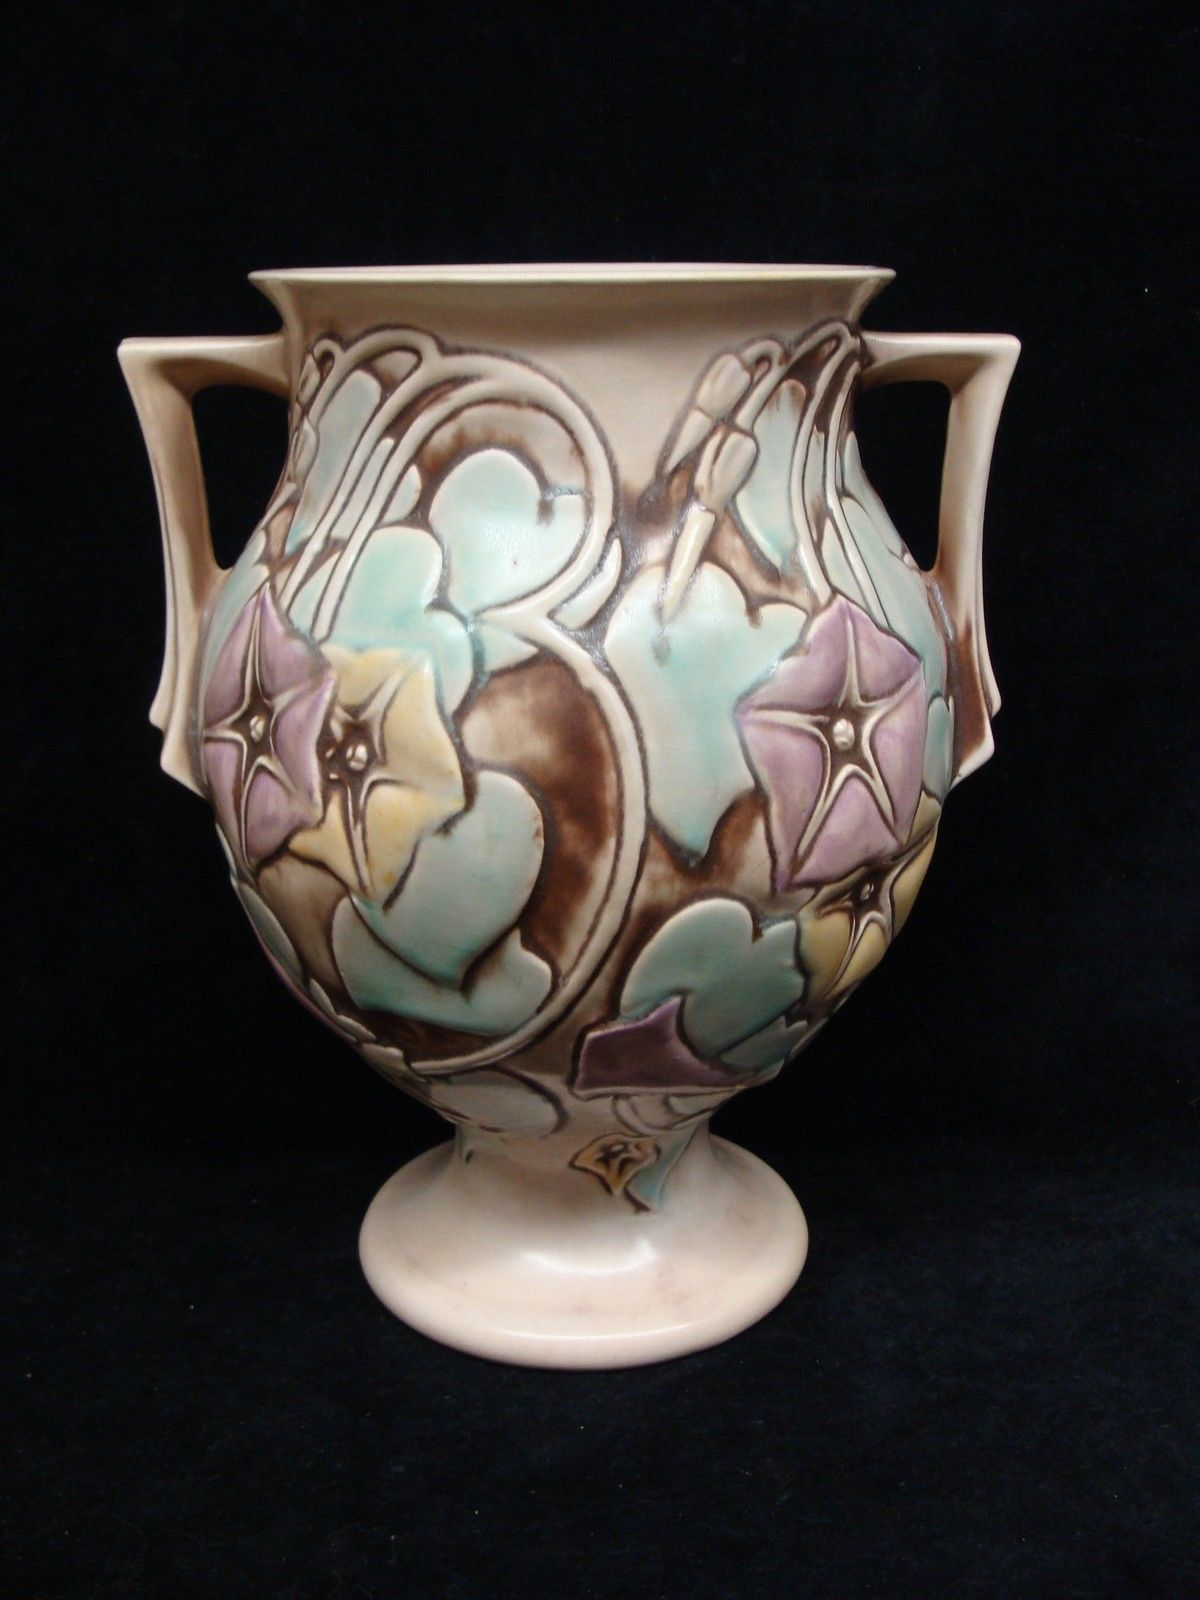 Art Deco Style Mid Period Roseville Art Pottery Morning Glory White Vase Footed   eBay